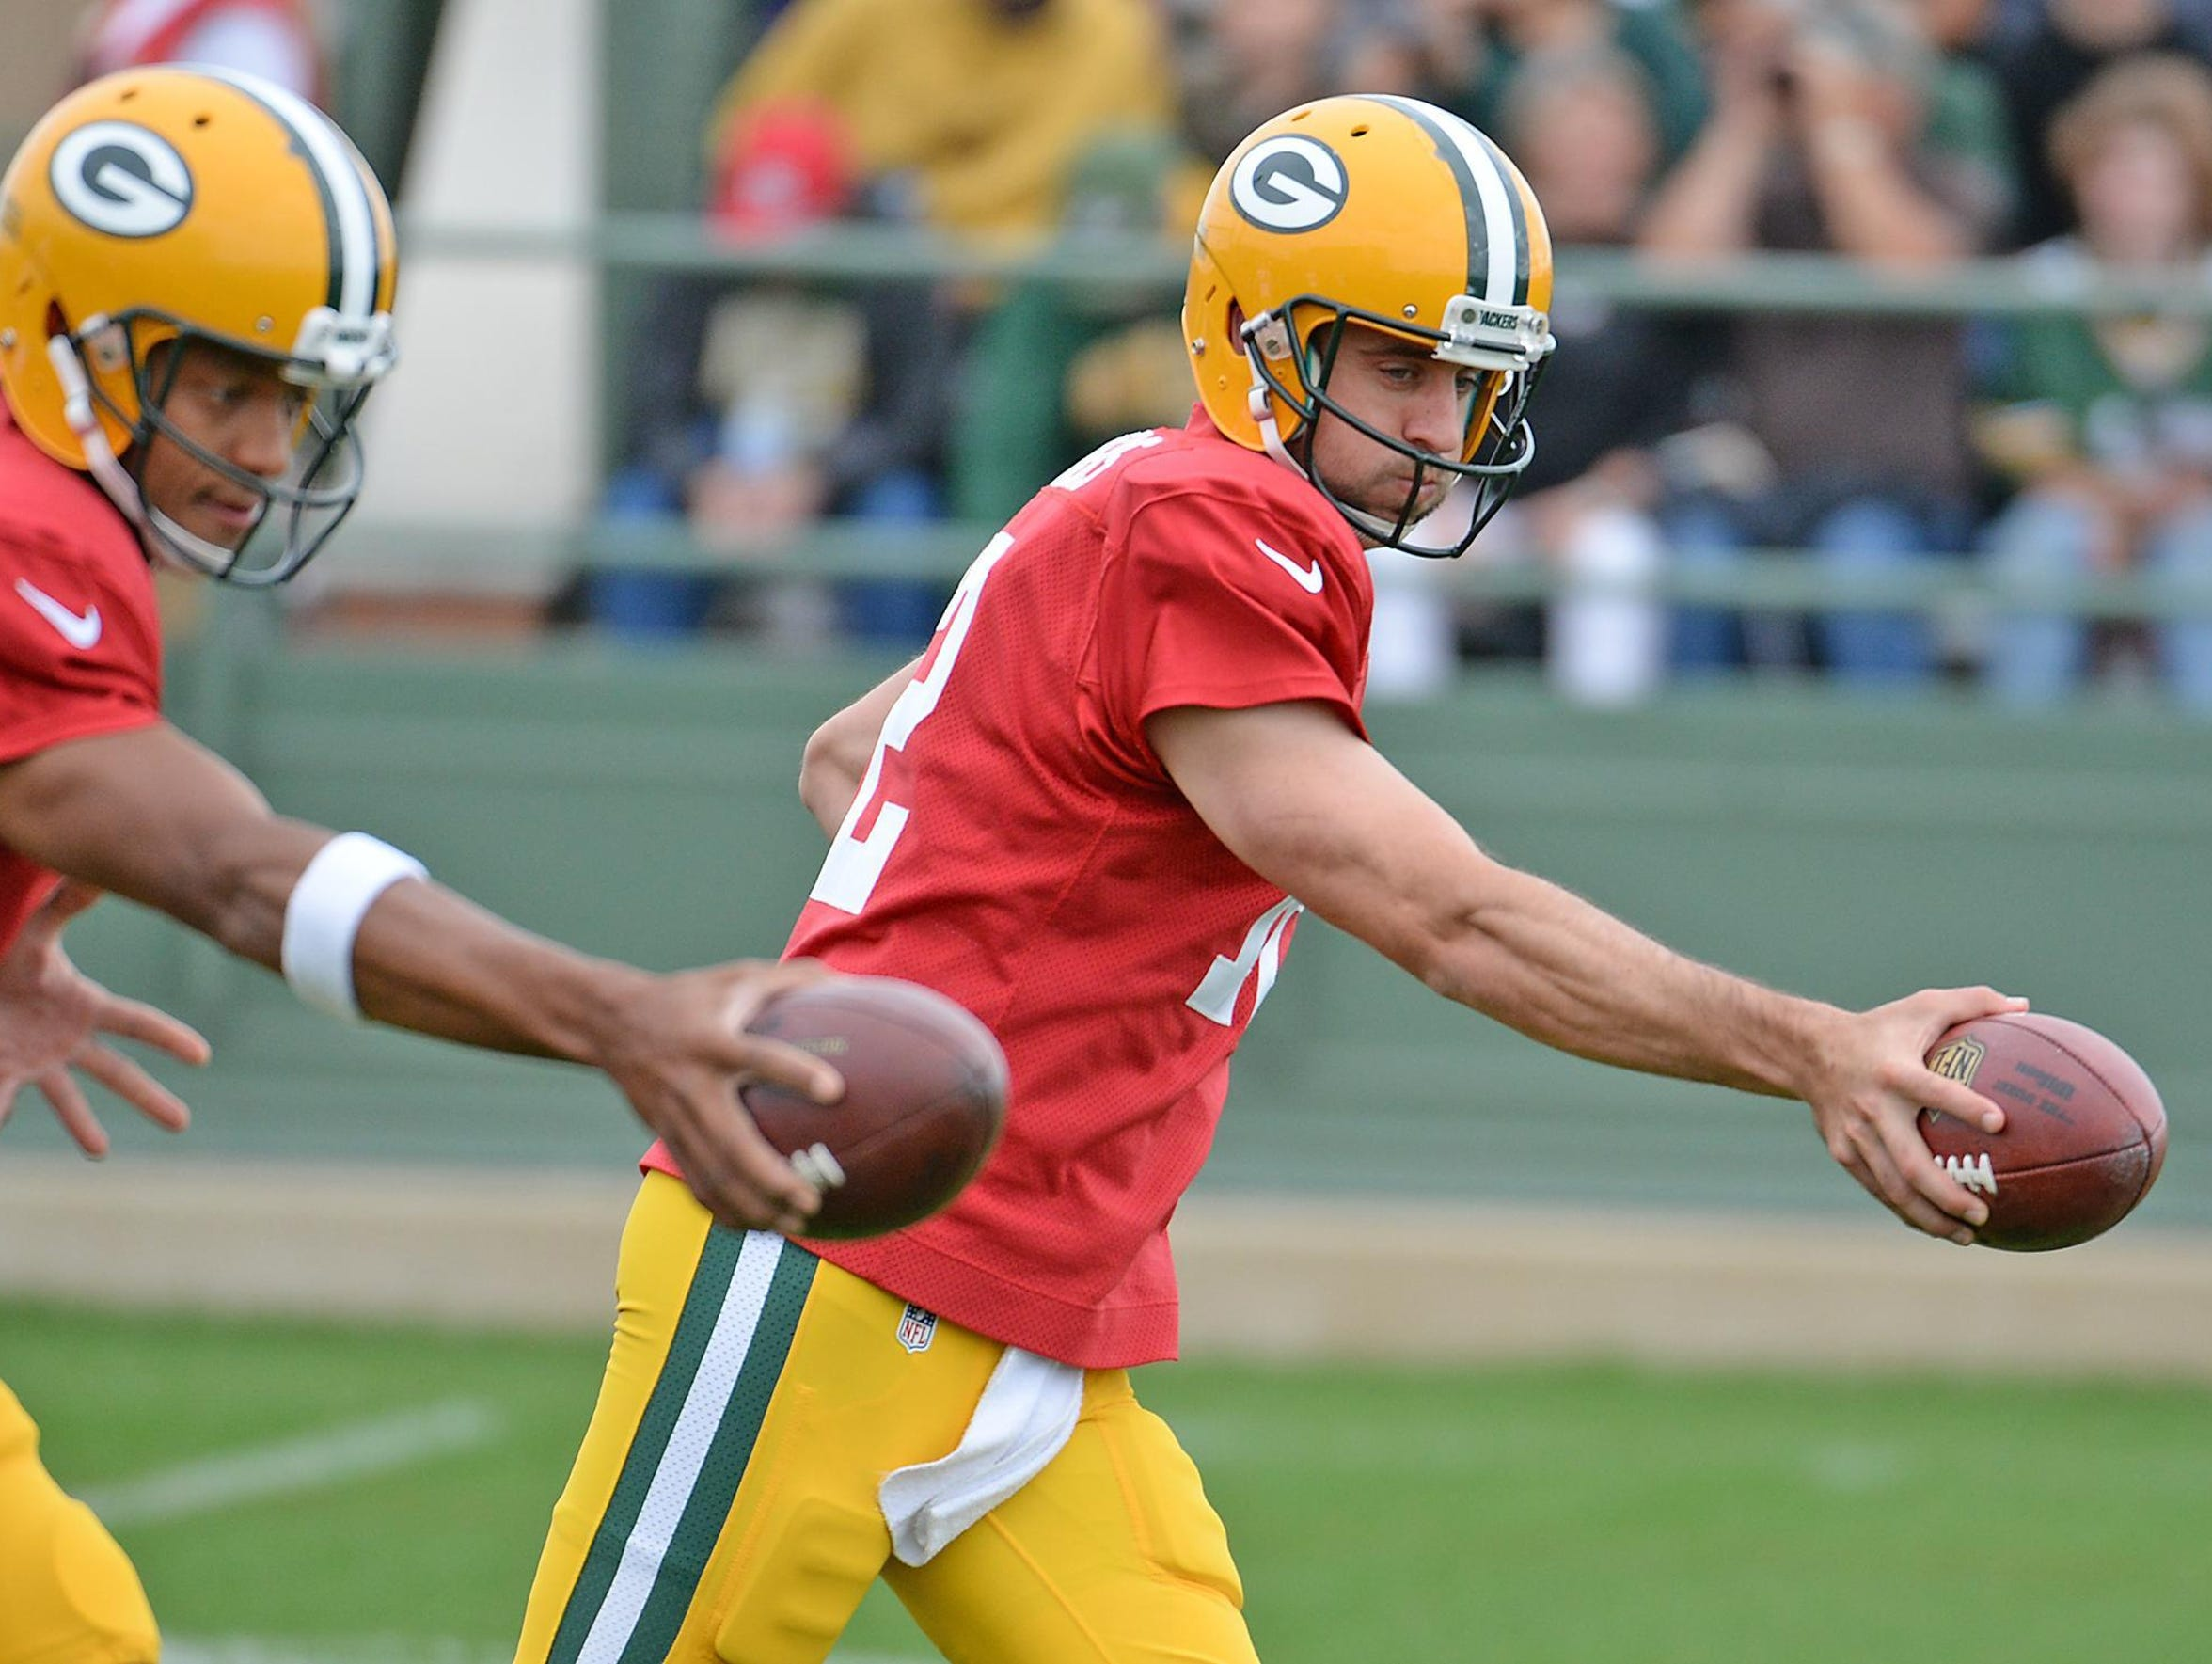 The Green Bay Packers training public practices will